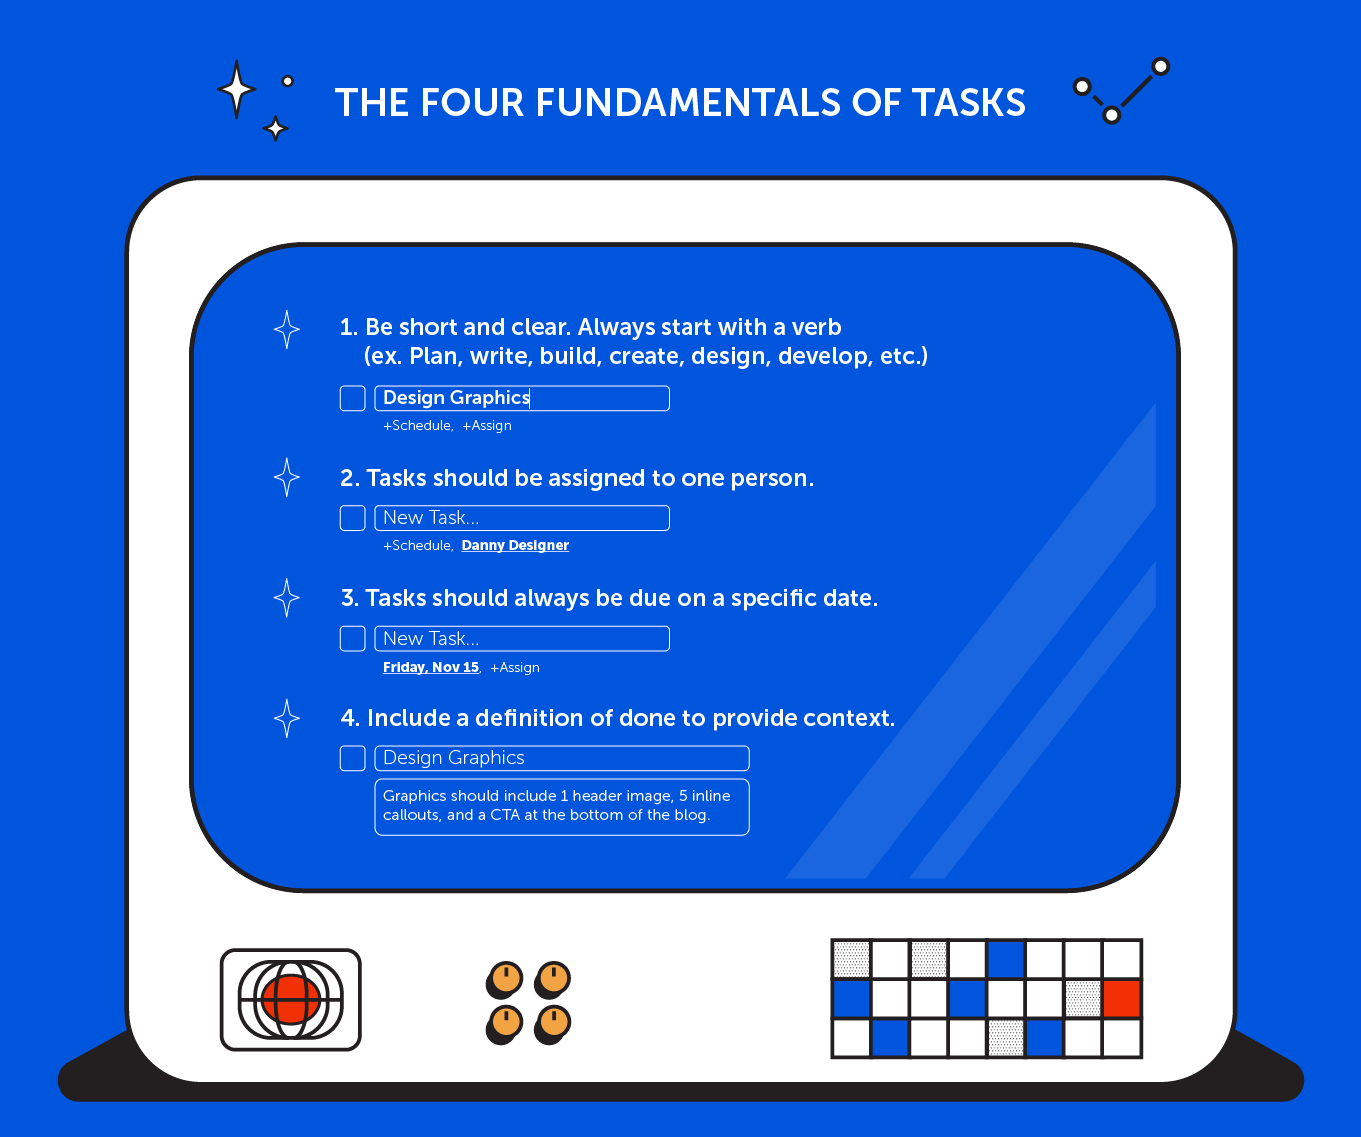 Four fundamentals of tasks